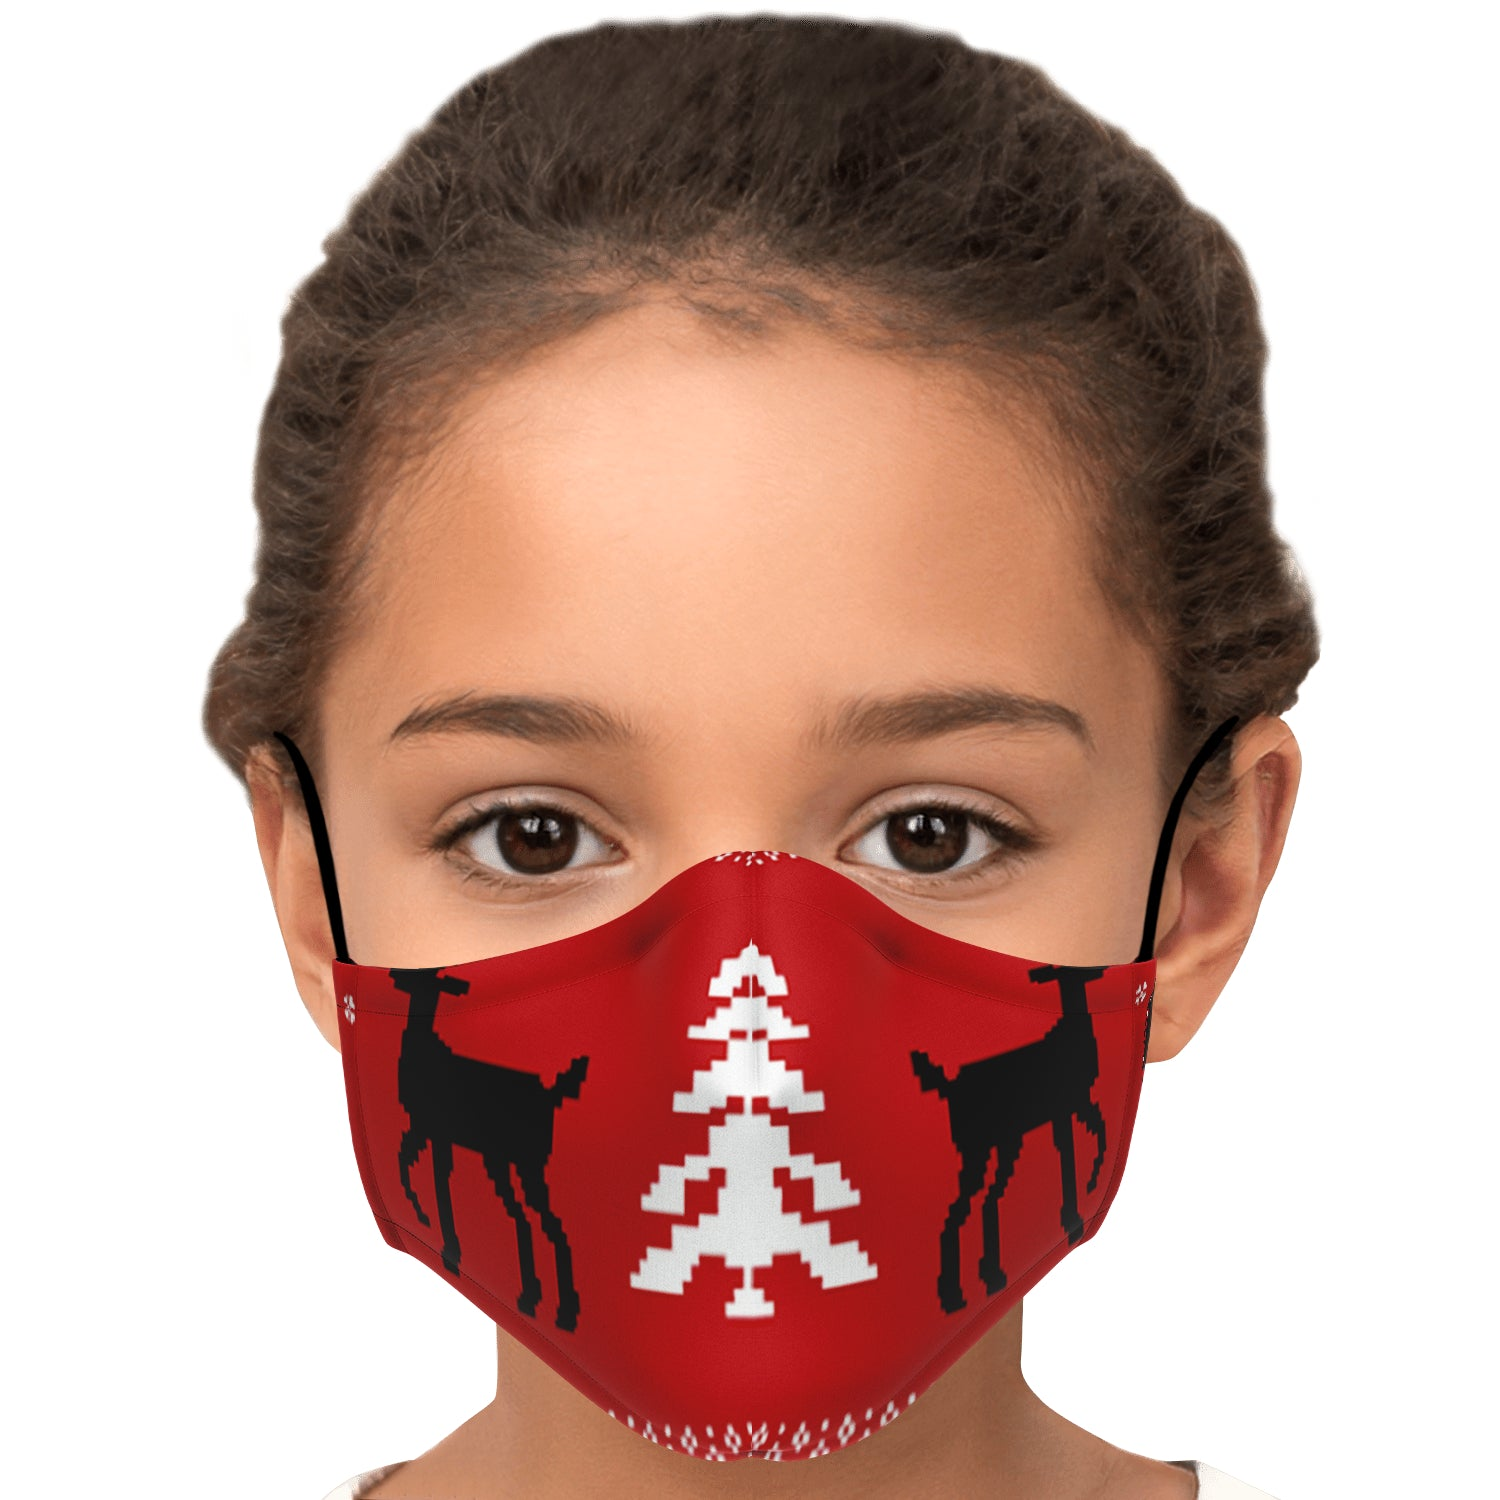 Allno A Reindeers Christmas Face Mask